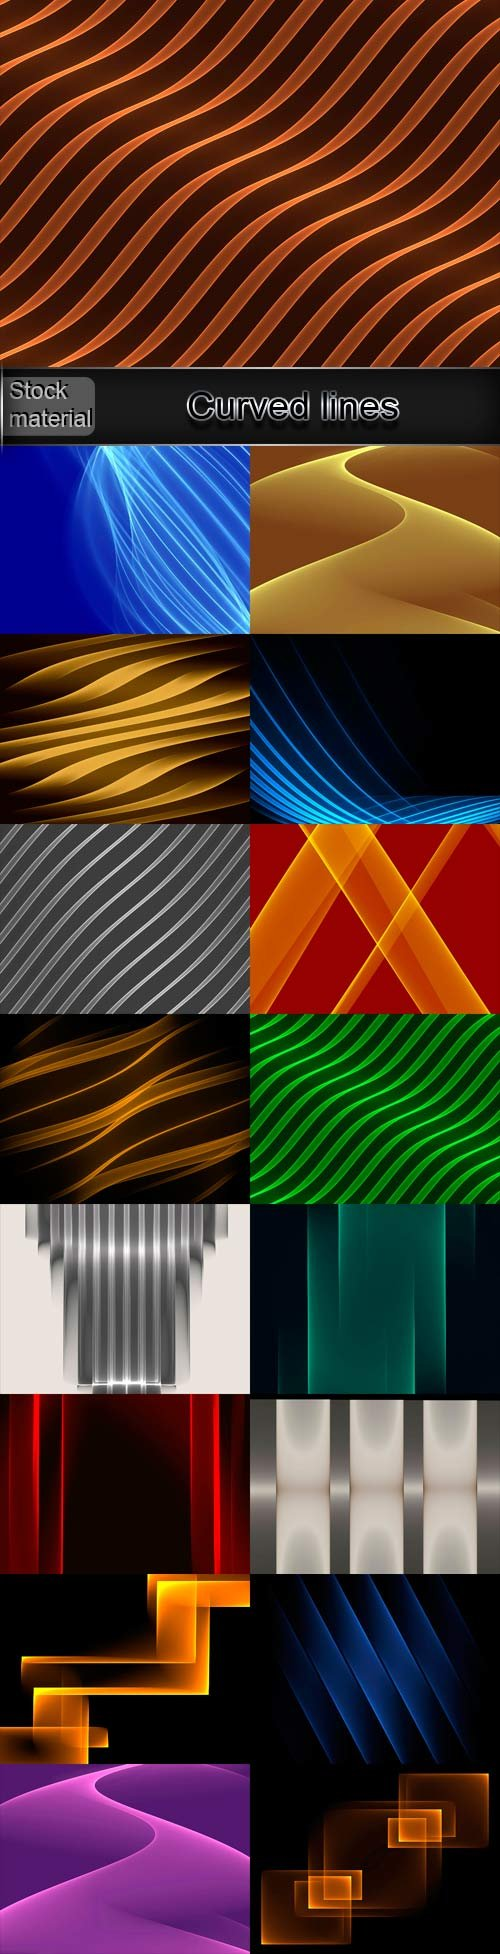 Curved lines abstract backgrounds